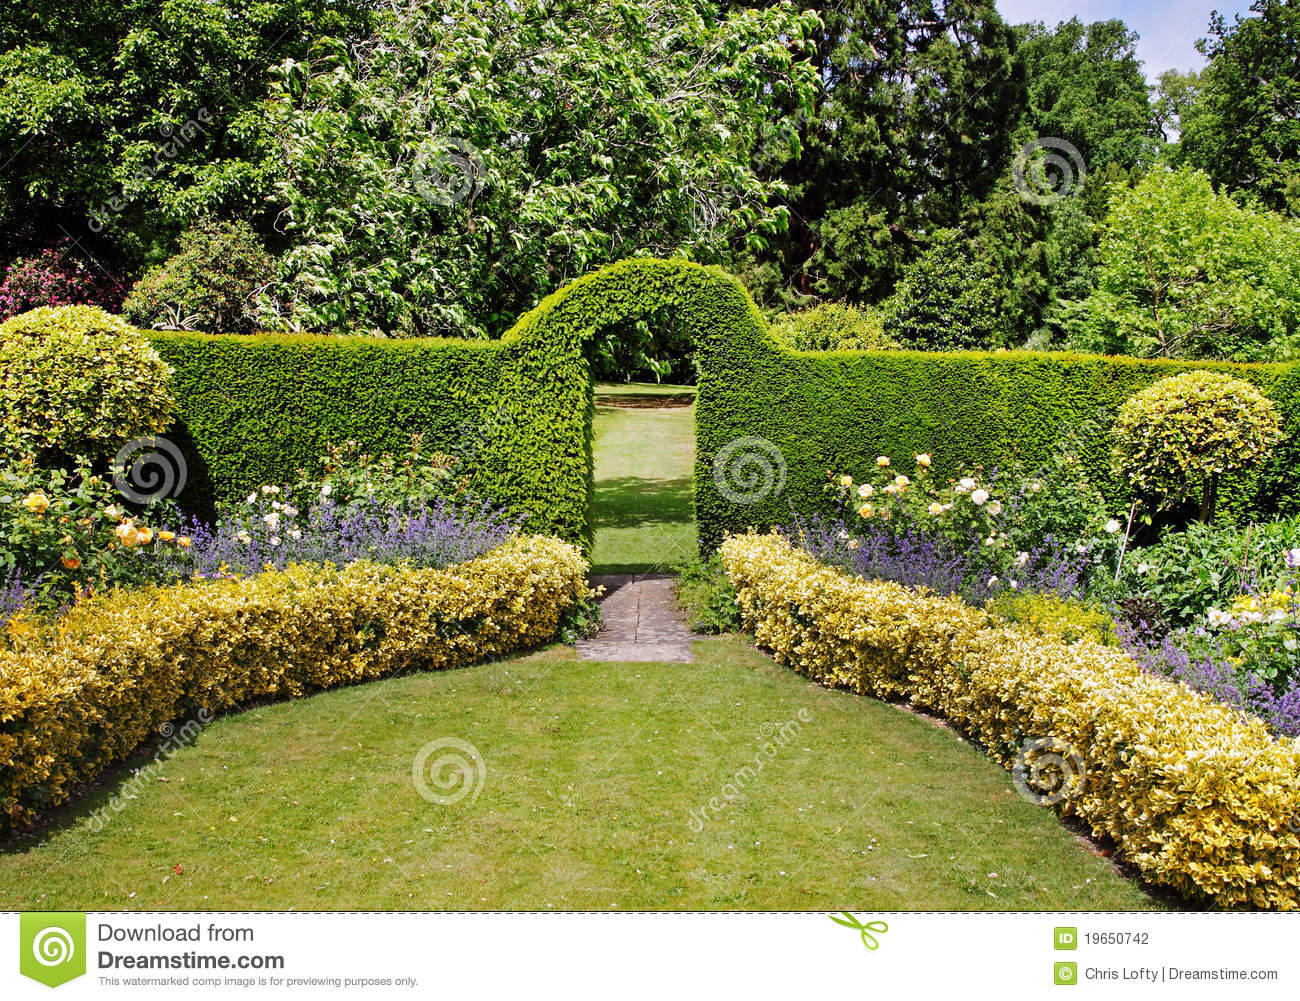 arquez par une bordure de haies dans un jardin anglais photo stock image du horticulture. Black Bedroom Furniture Sets. Home Design Ideas